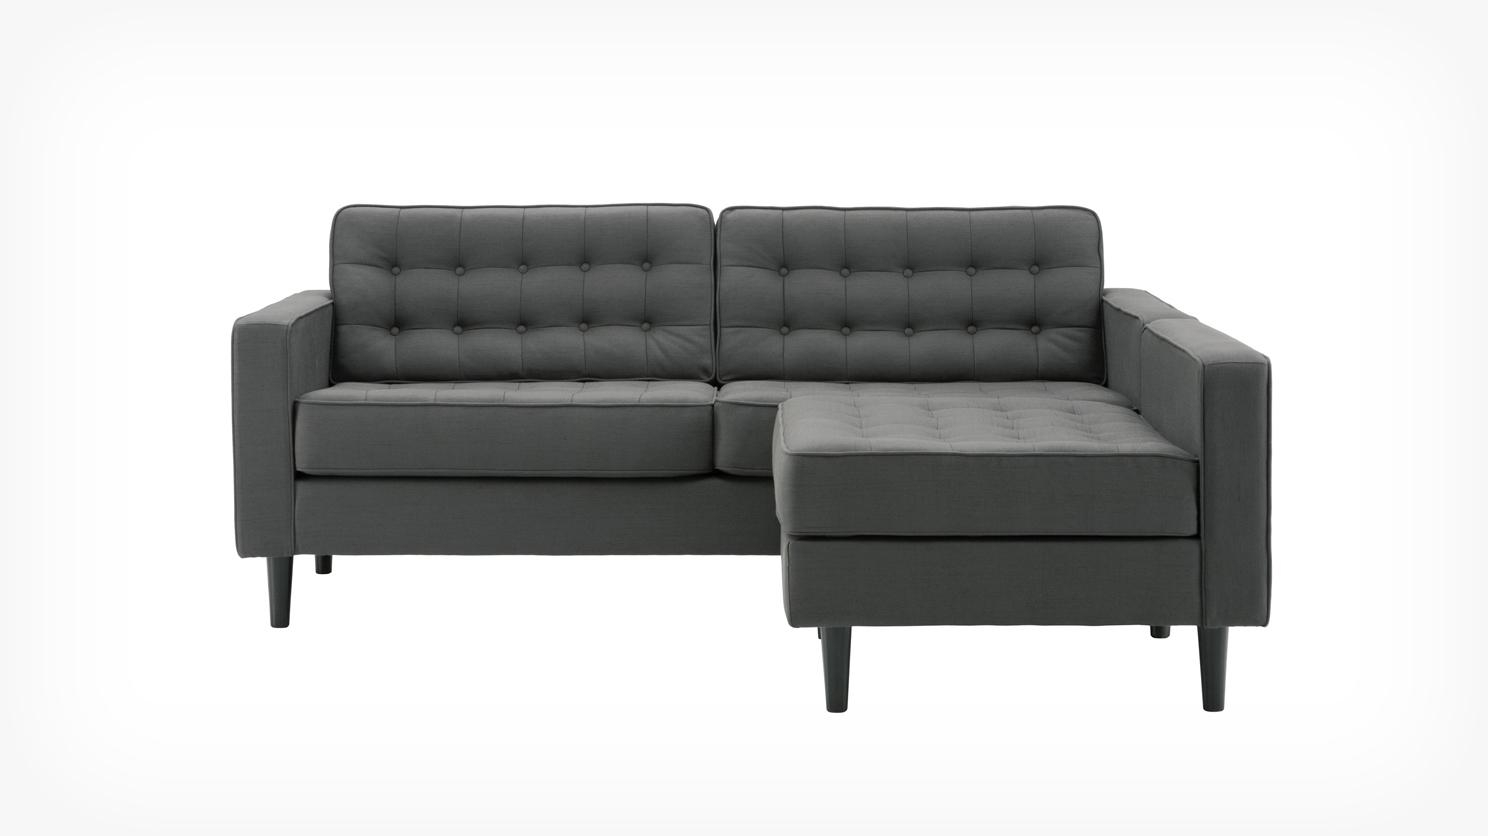 Eq3 | Reverie Apartment 2 Piece Sectional Sofa With Chaise – Fabric For Apartment Sofa Sectional (View 5 of 15)